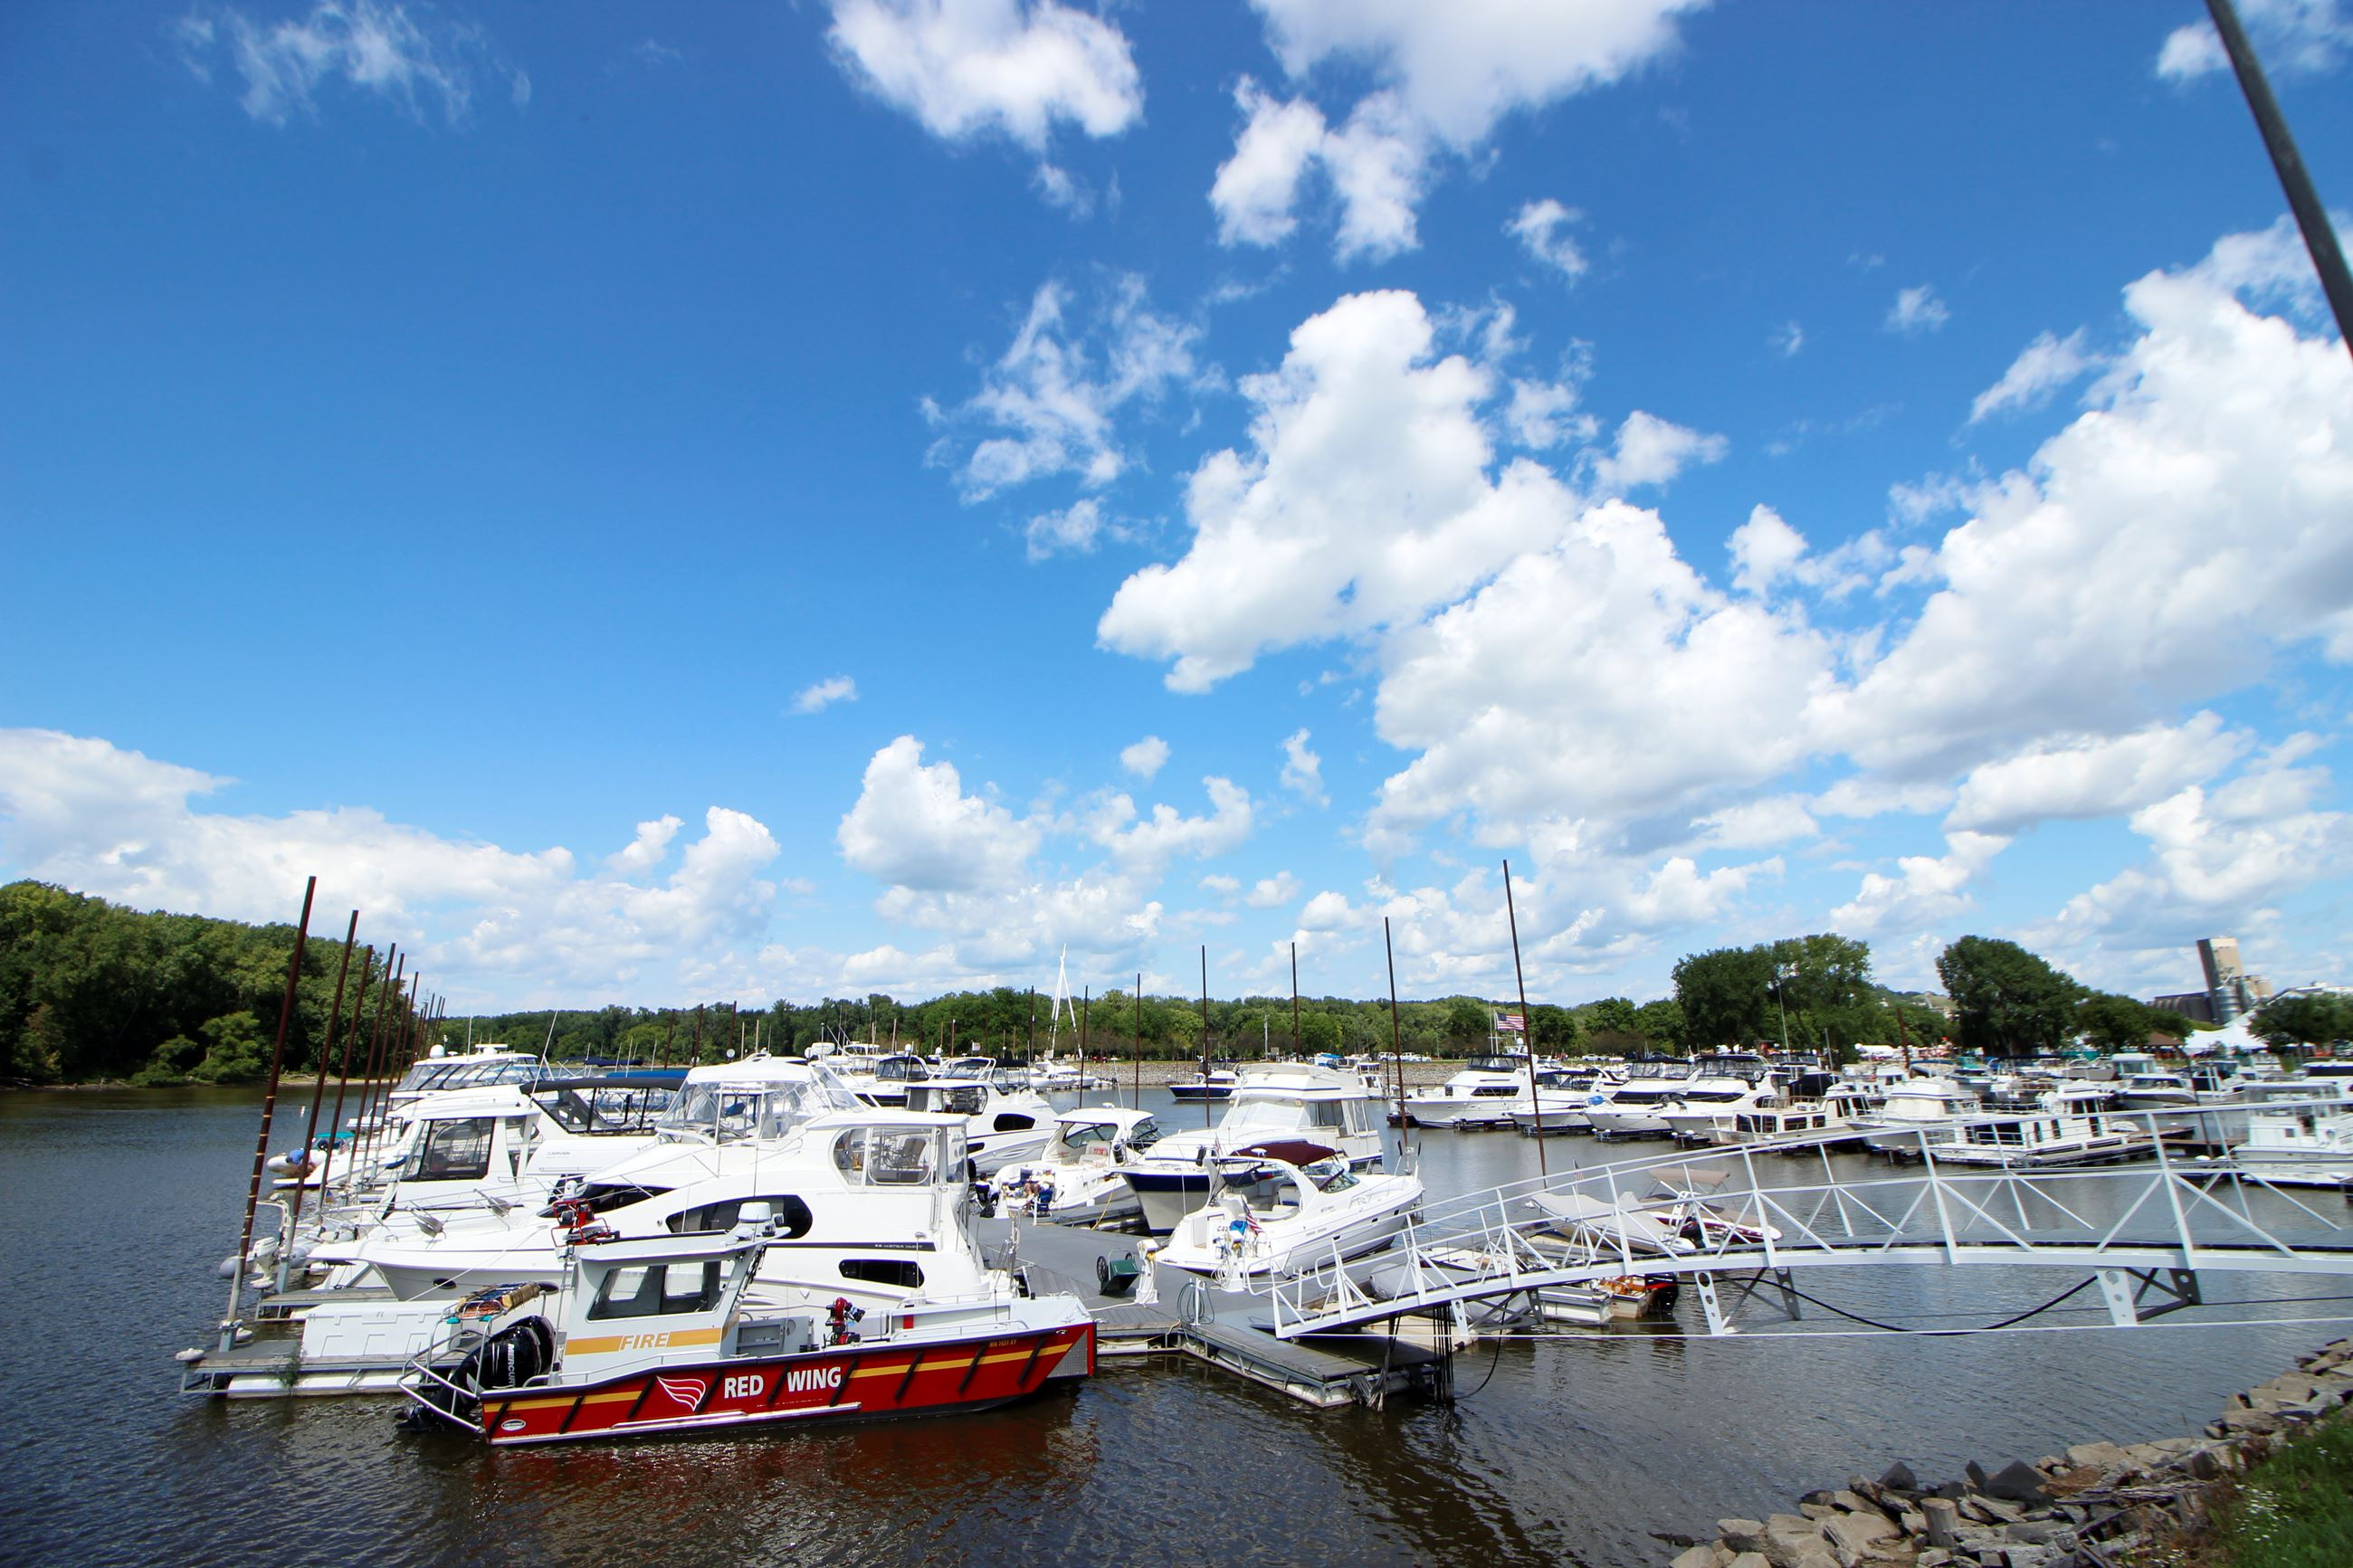 Image of boats docked at a marina in the summertime